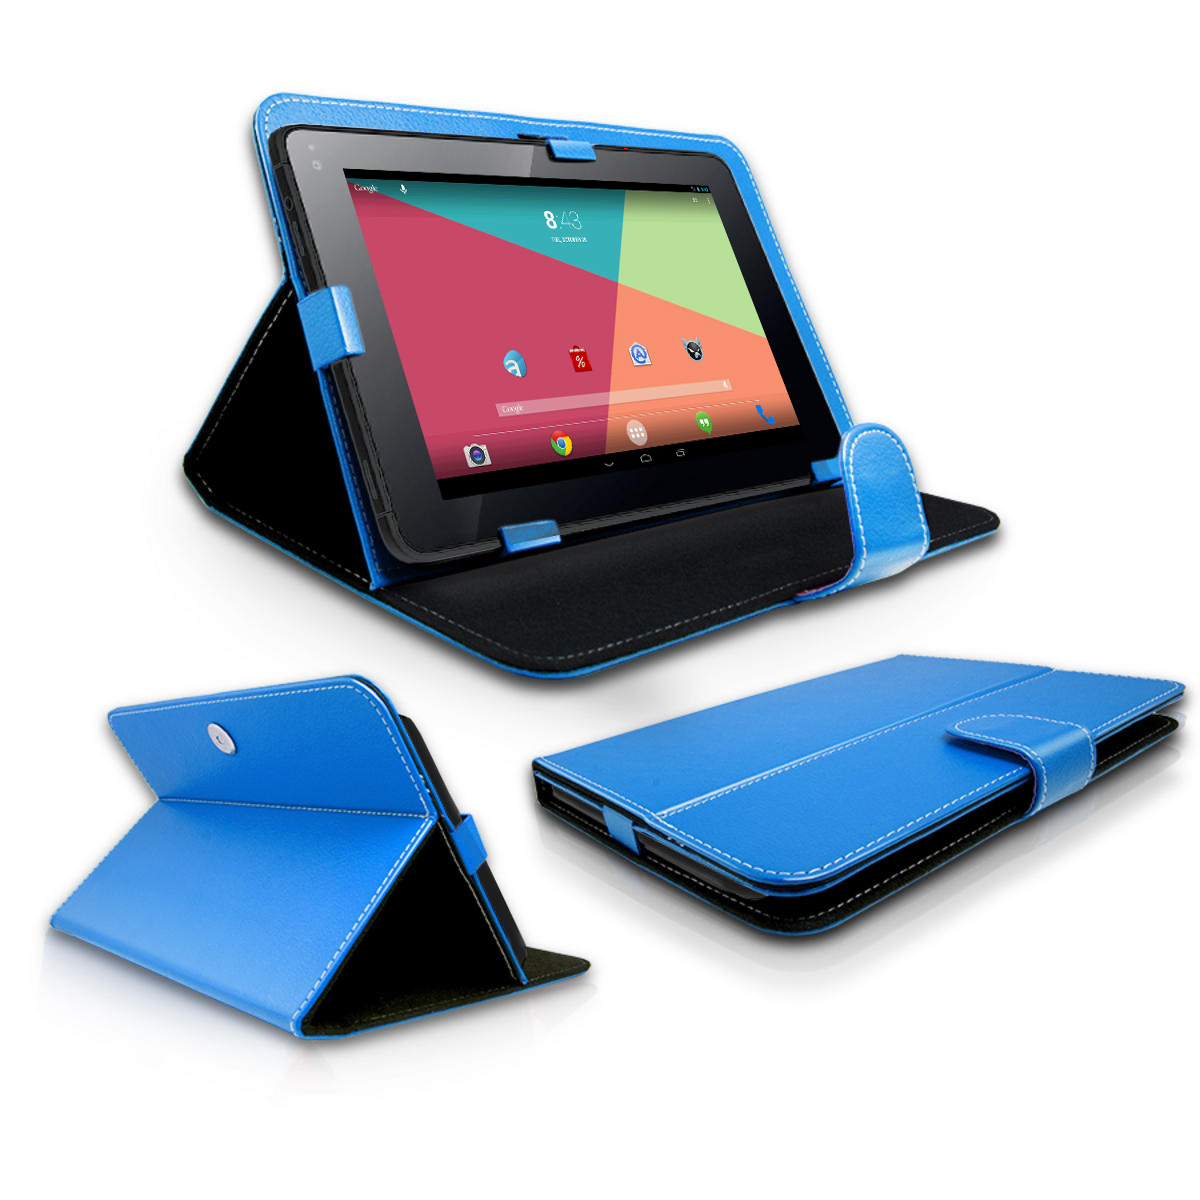 1tablet-blue-case1.jpg